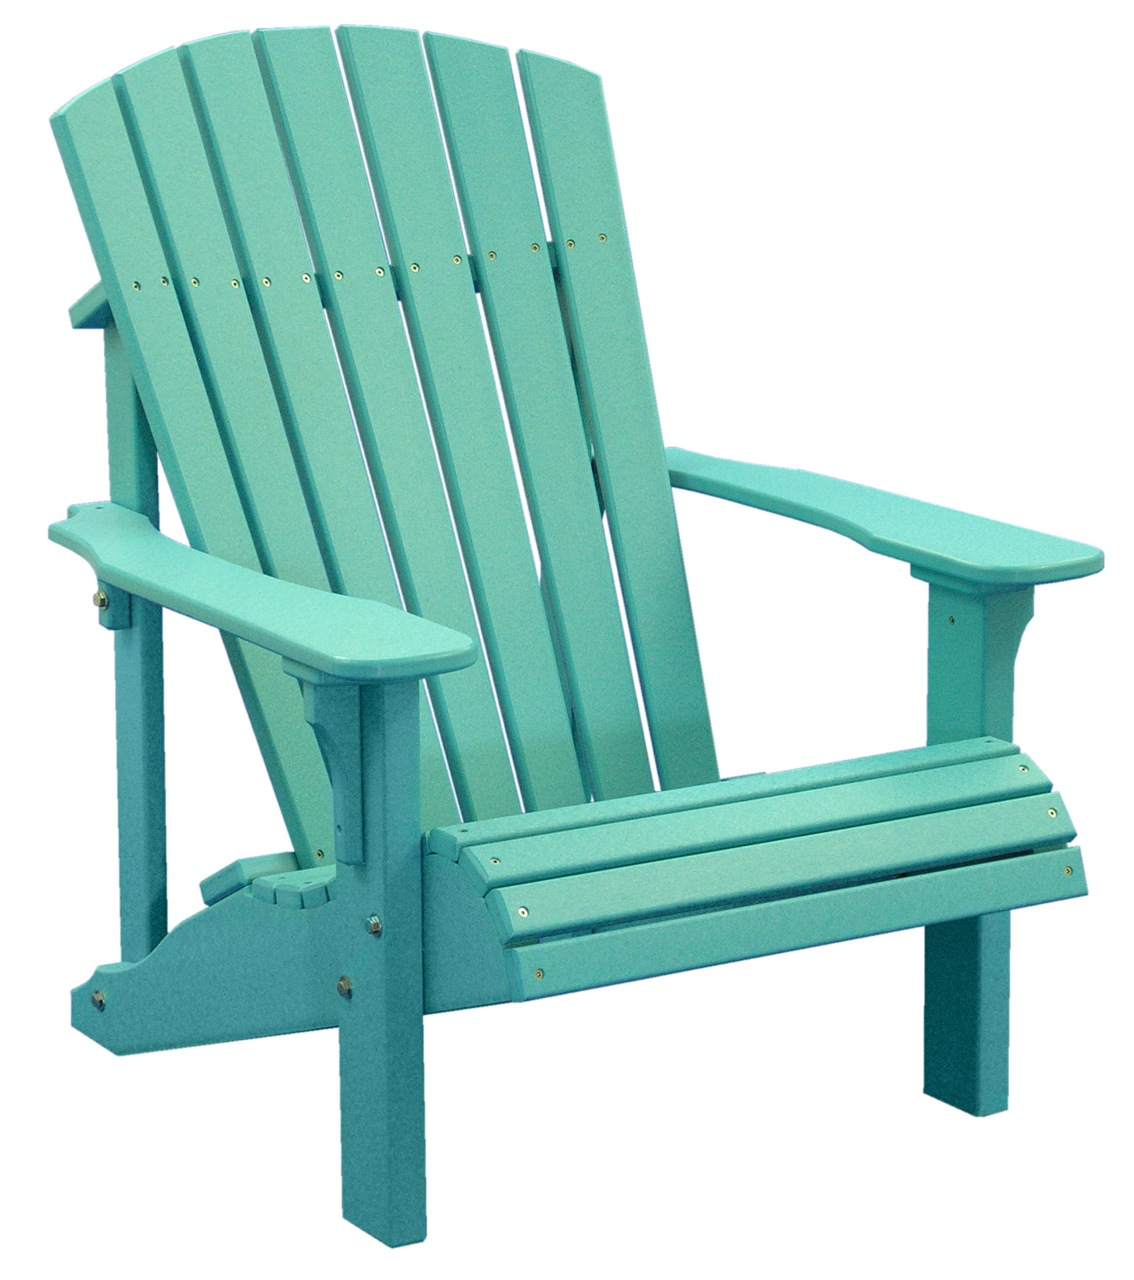 1134x1280 Sofa Pretty Adirondack Chairs Clipart Chair Scene 8728781jpg